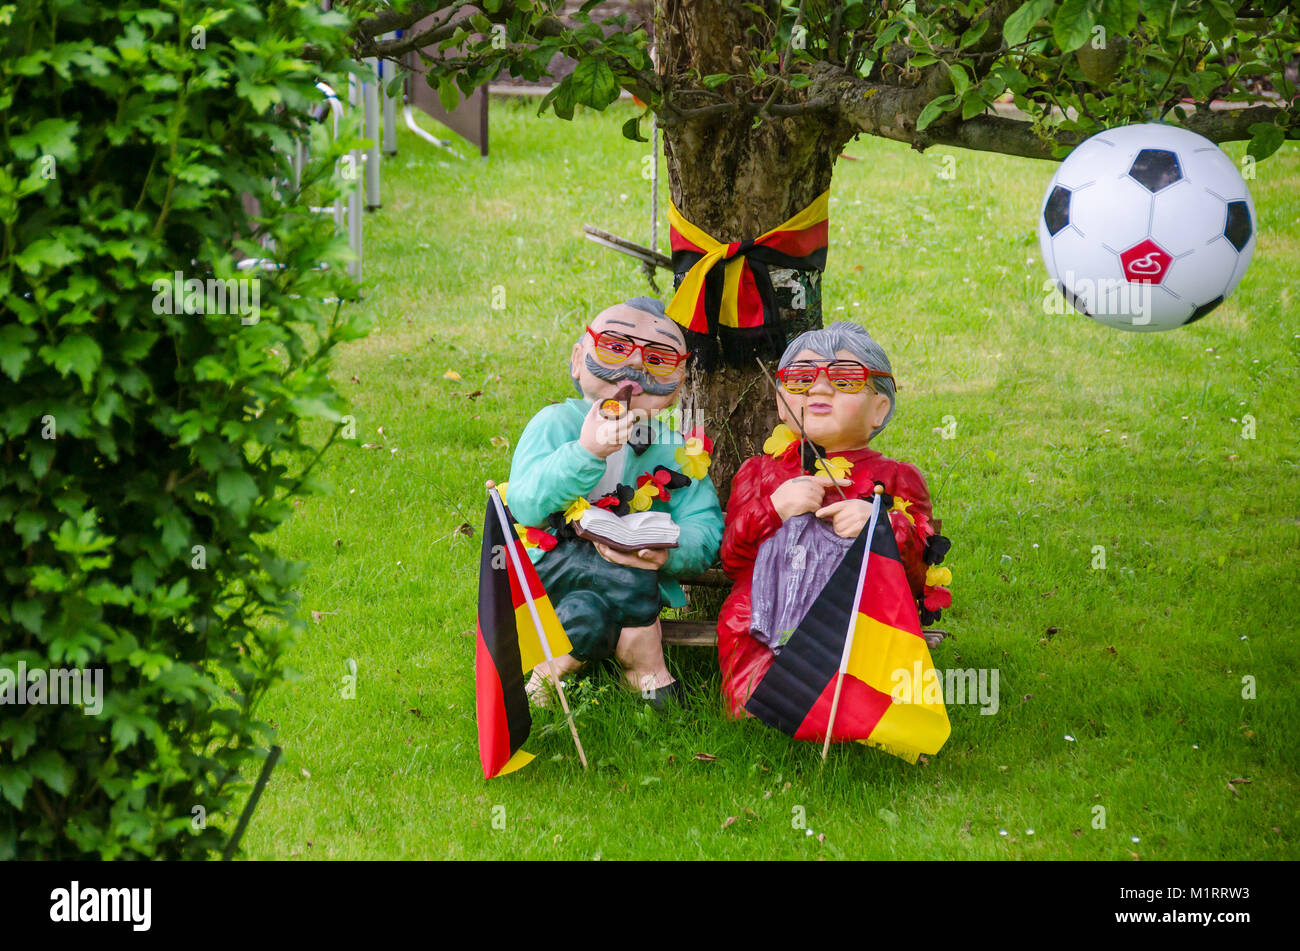 Berlin, Germany - July 2, 2016: German football fans decorated their garden with flags and balls looking forward - Stock Image